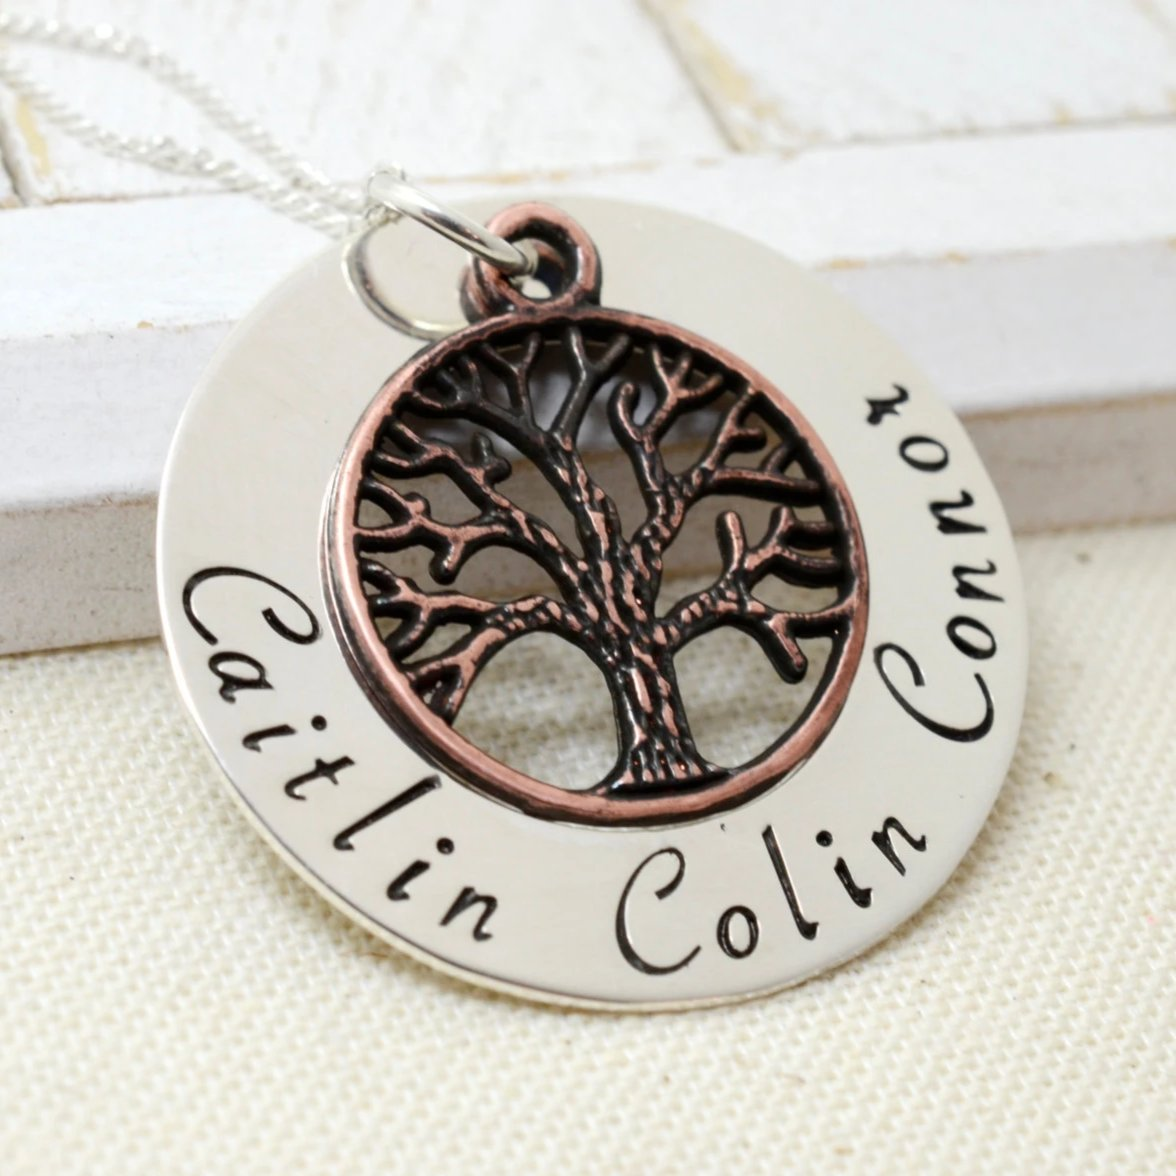 Personalized Copper Family Tree Necklace - Love It Personalized